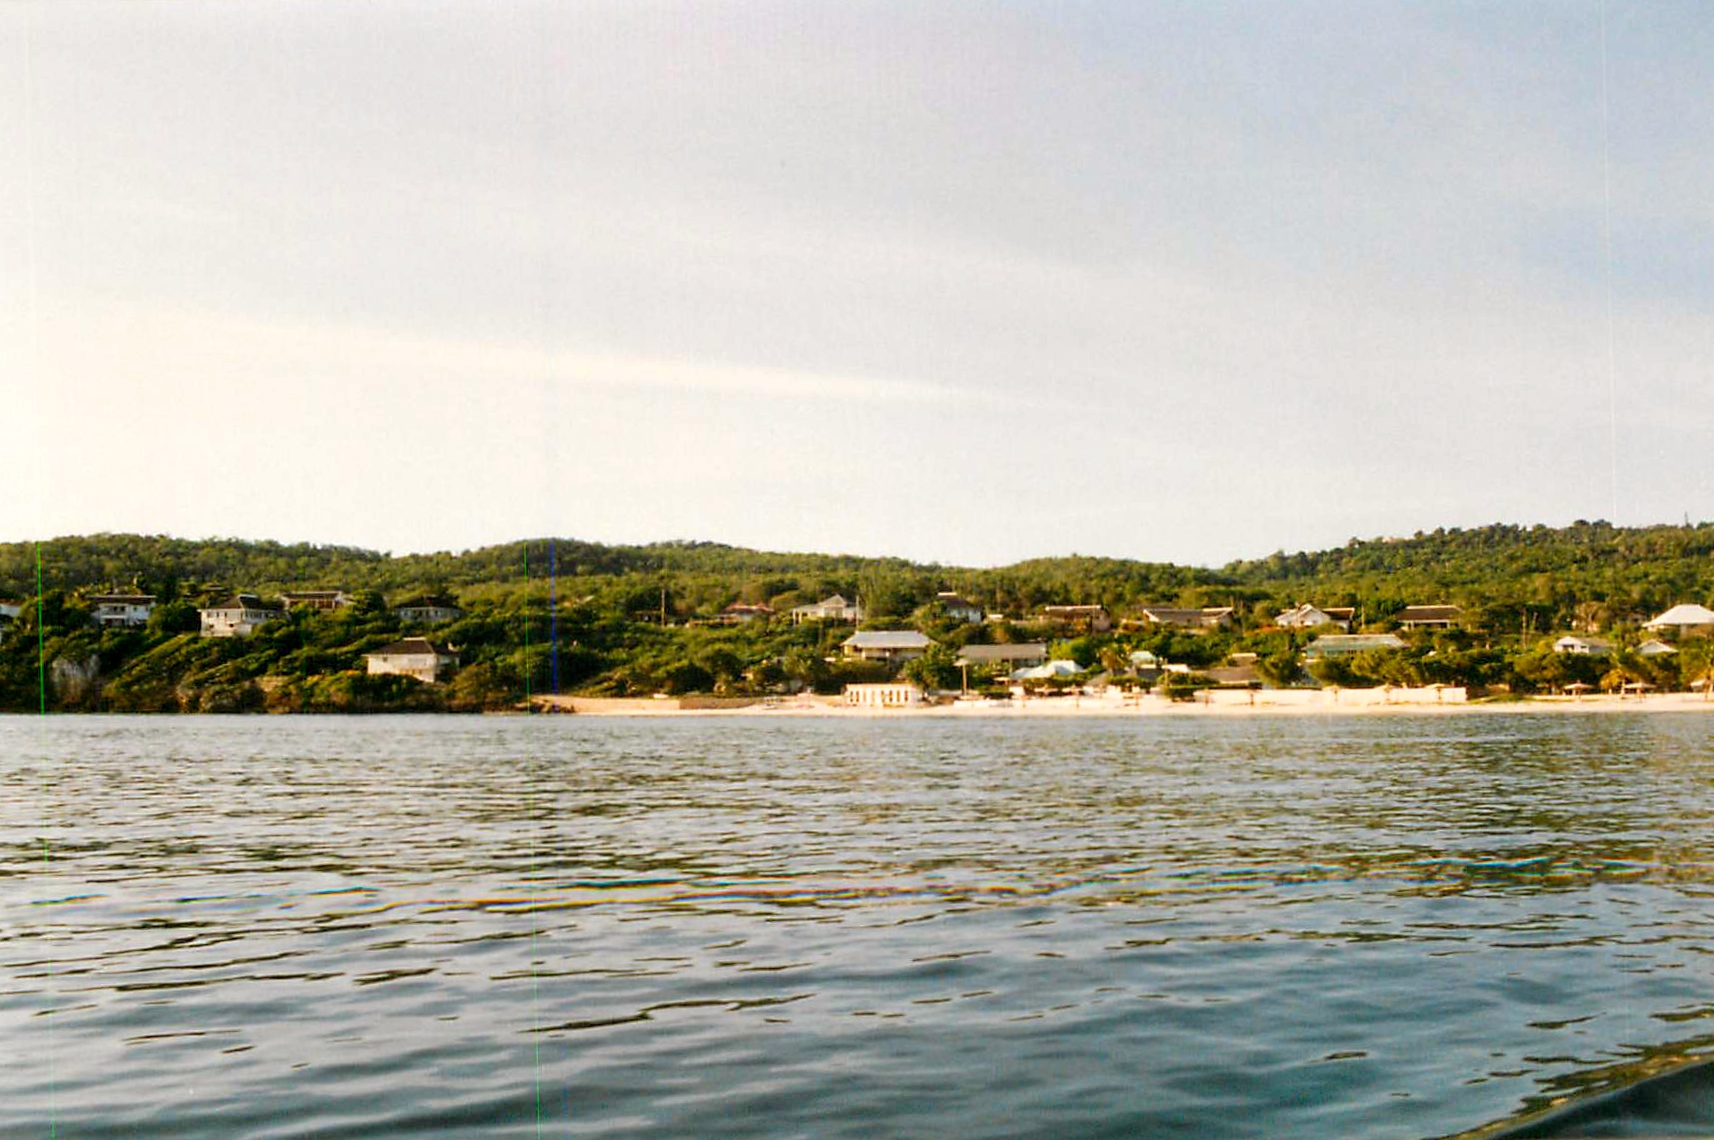 Beach from the Water.jpg